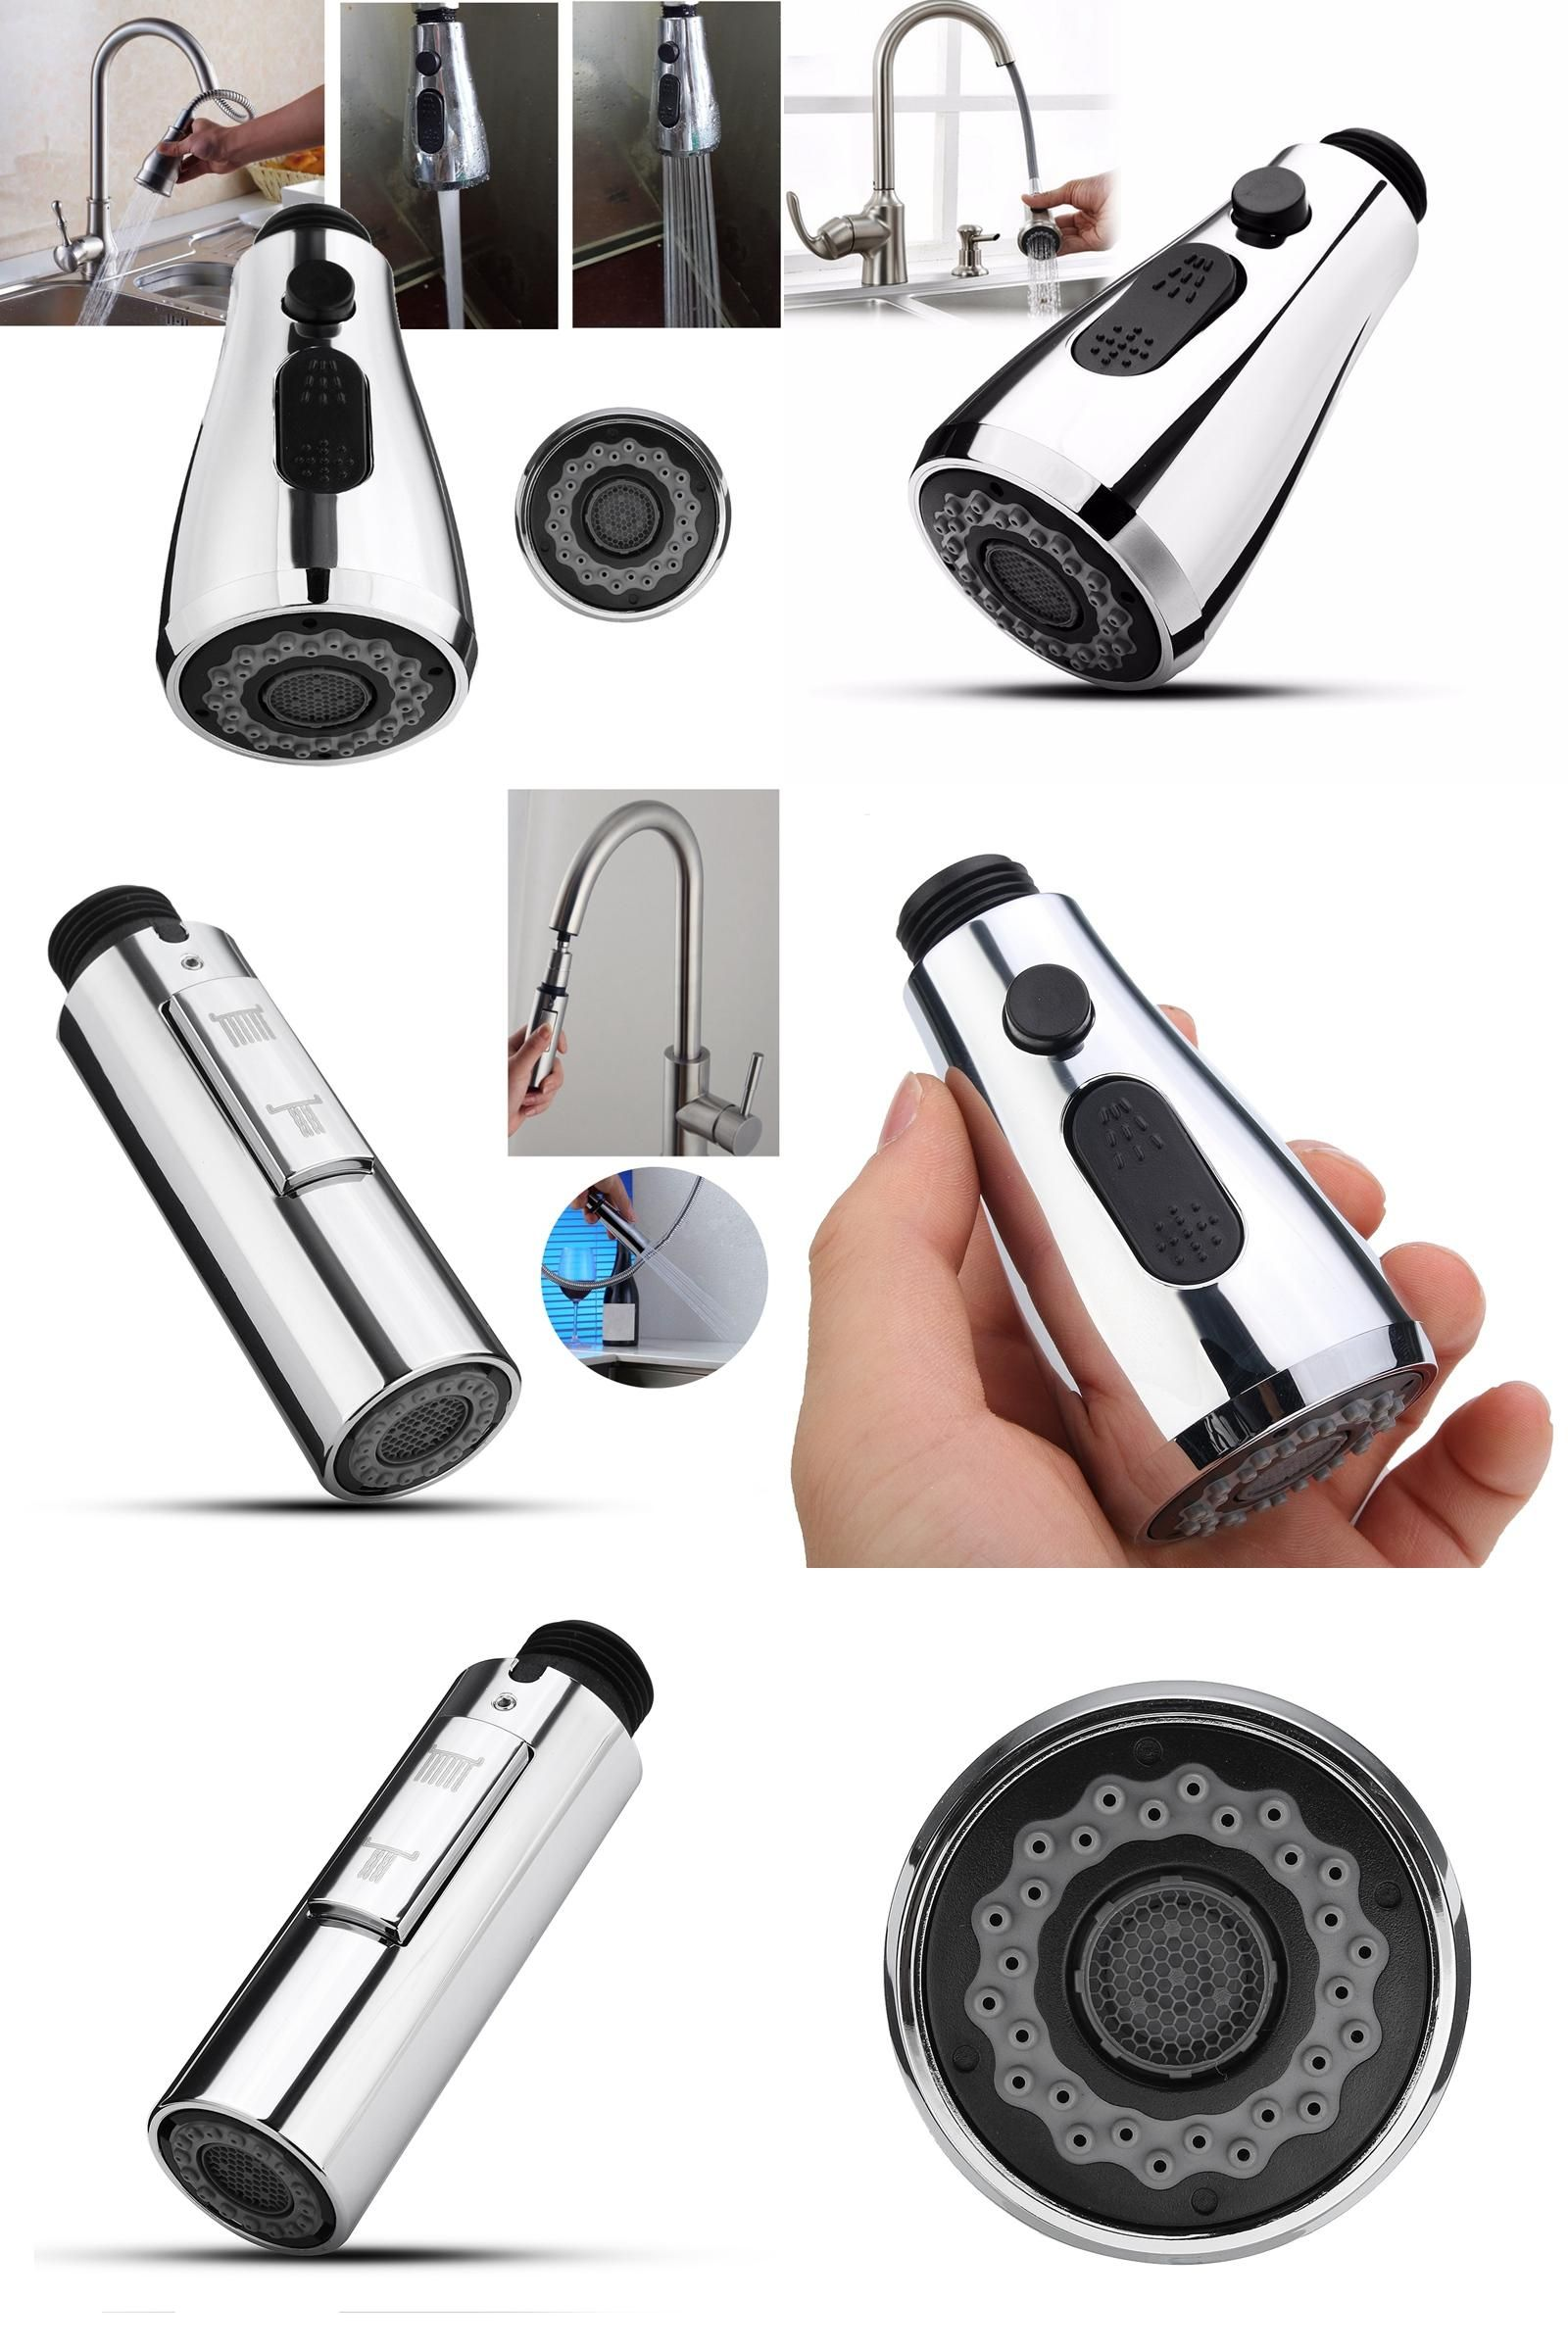 Visit to Buy Pull Out Down Kitchen Faucet Spray Nozzle 360 Swivel